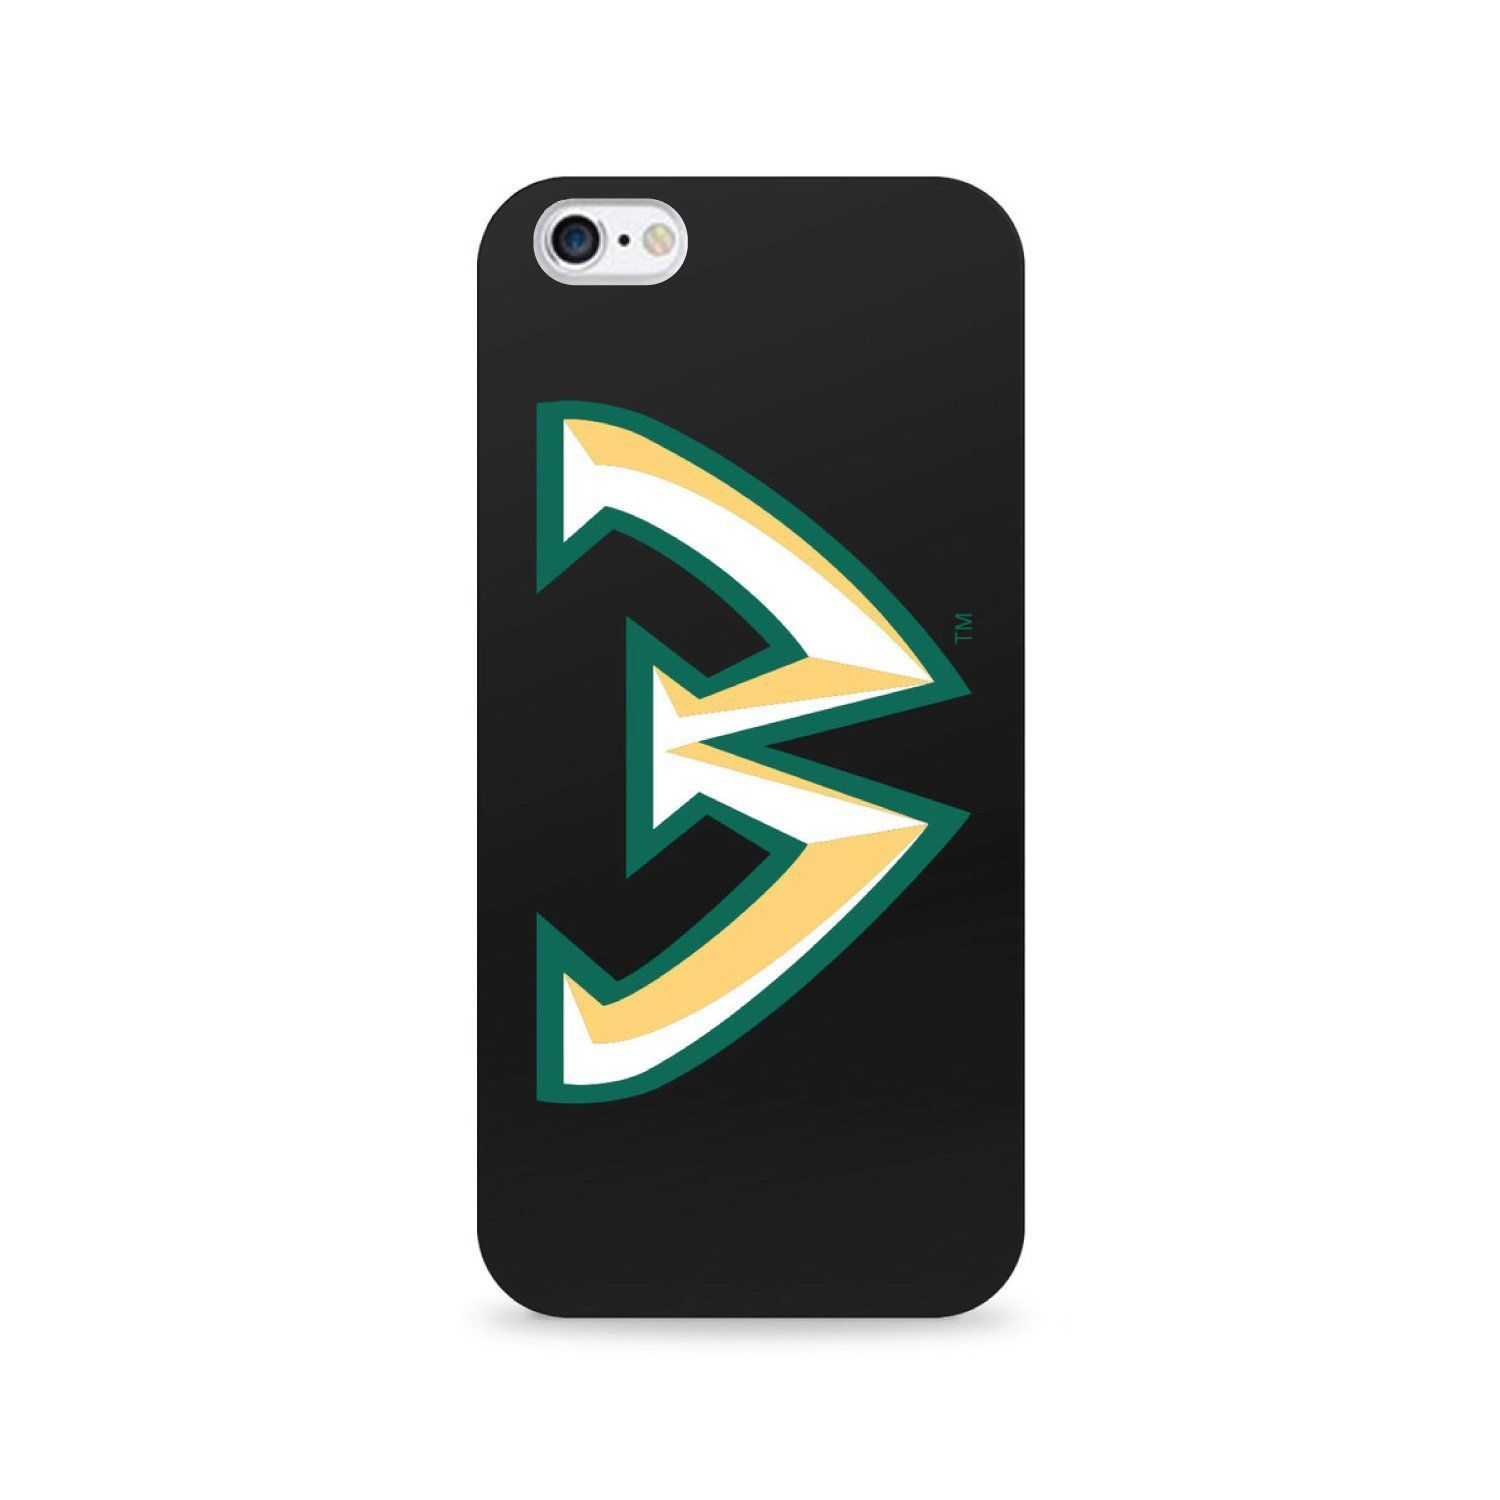 Wayne State UniversityiPhone 6/6s Phone Case